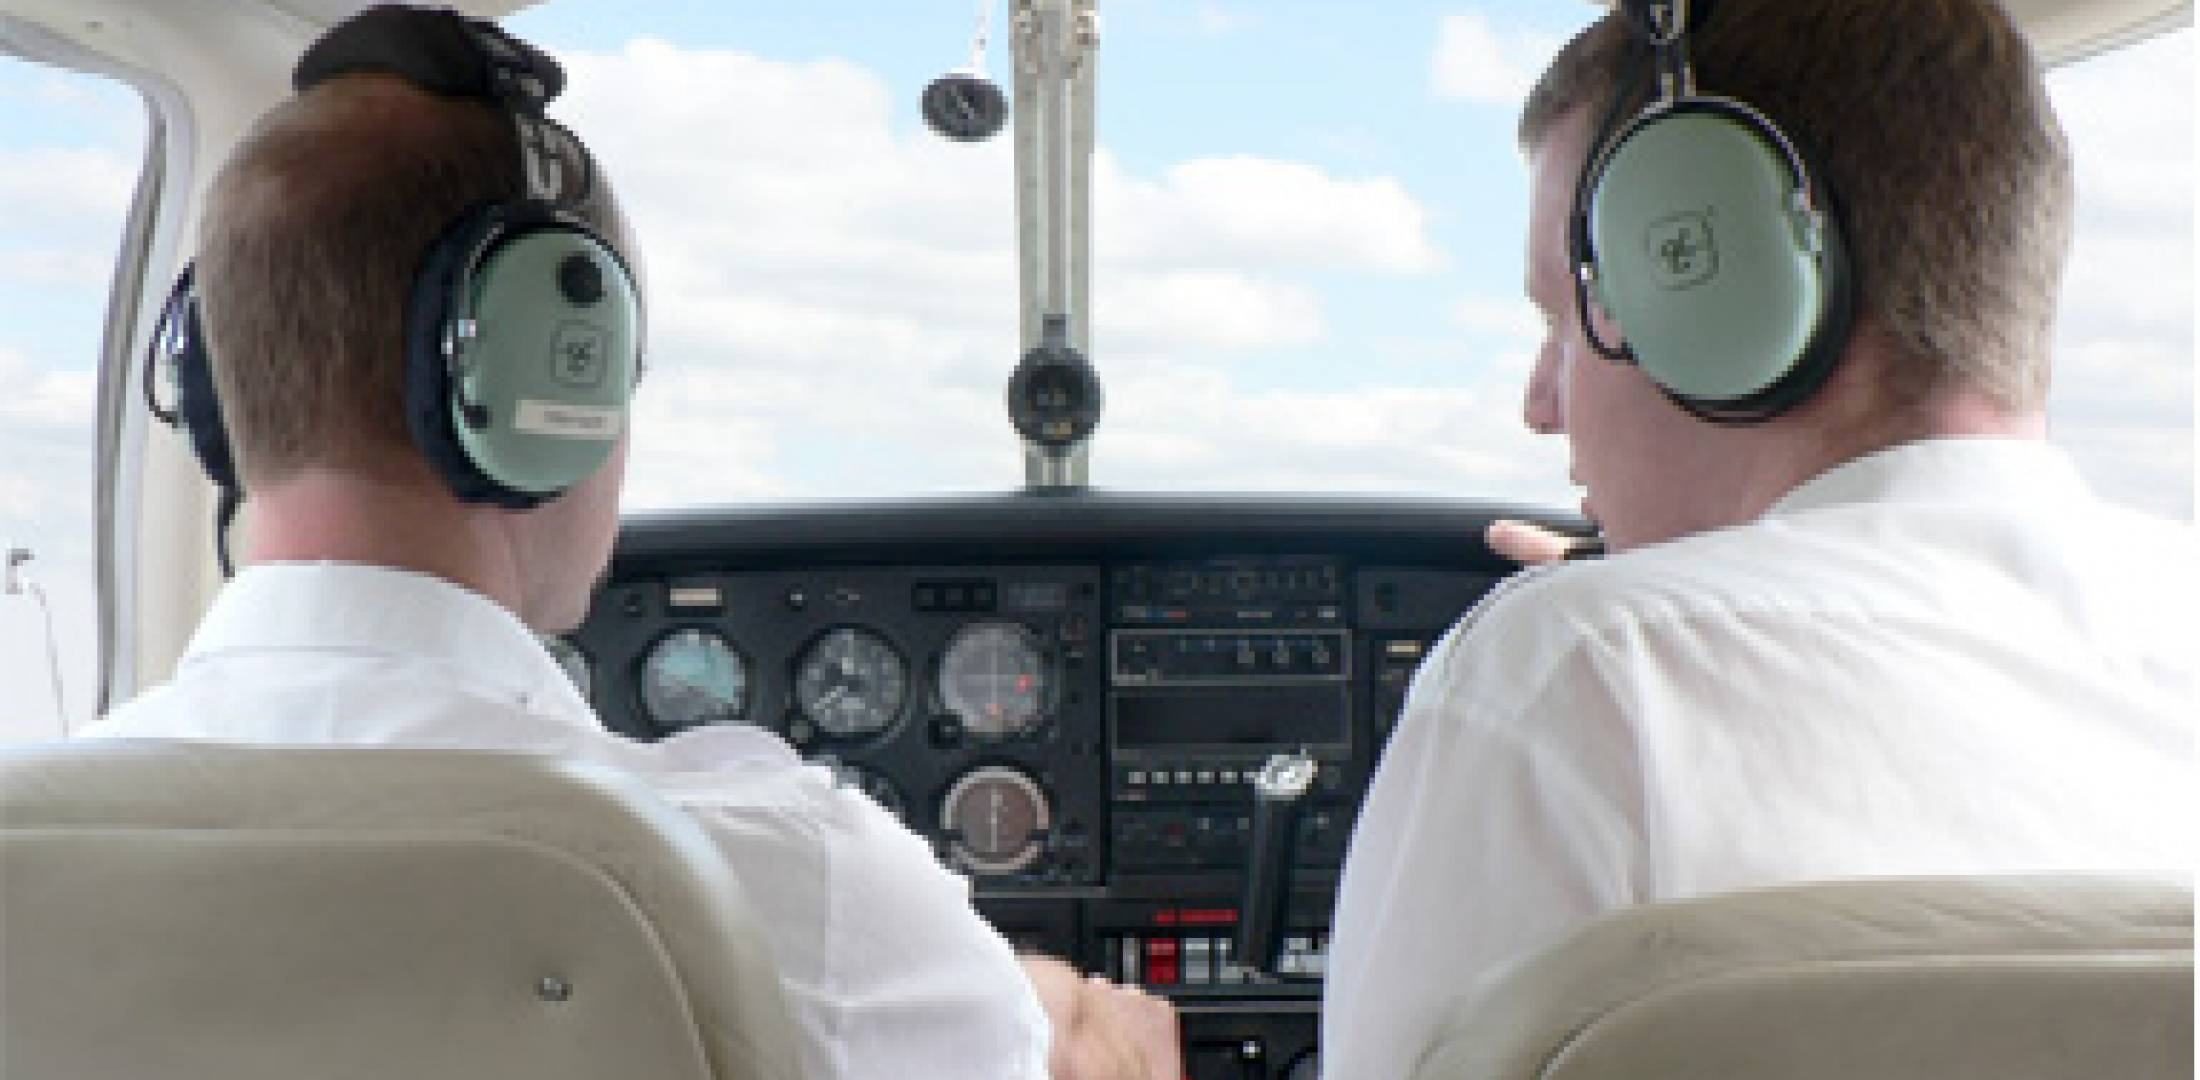 Airline pilot training must improve